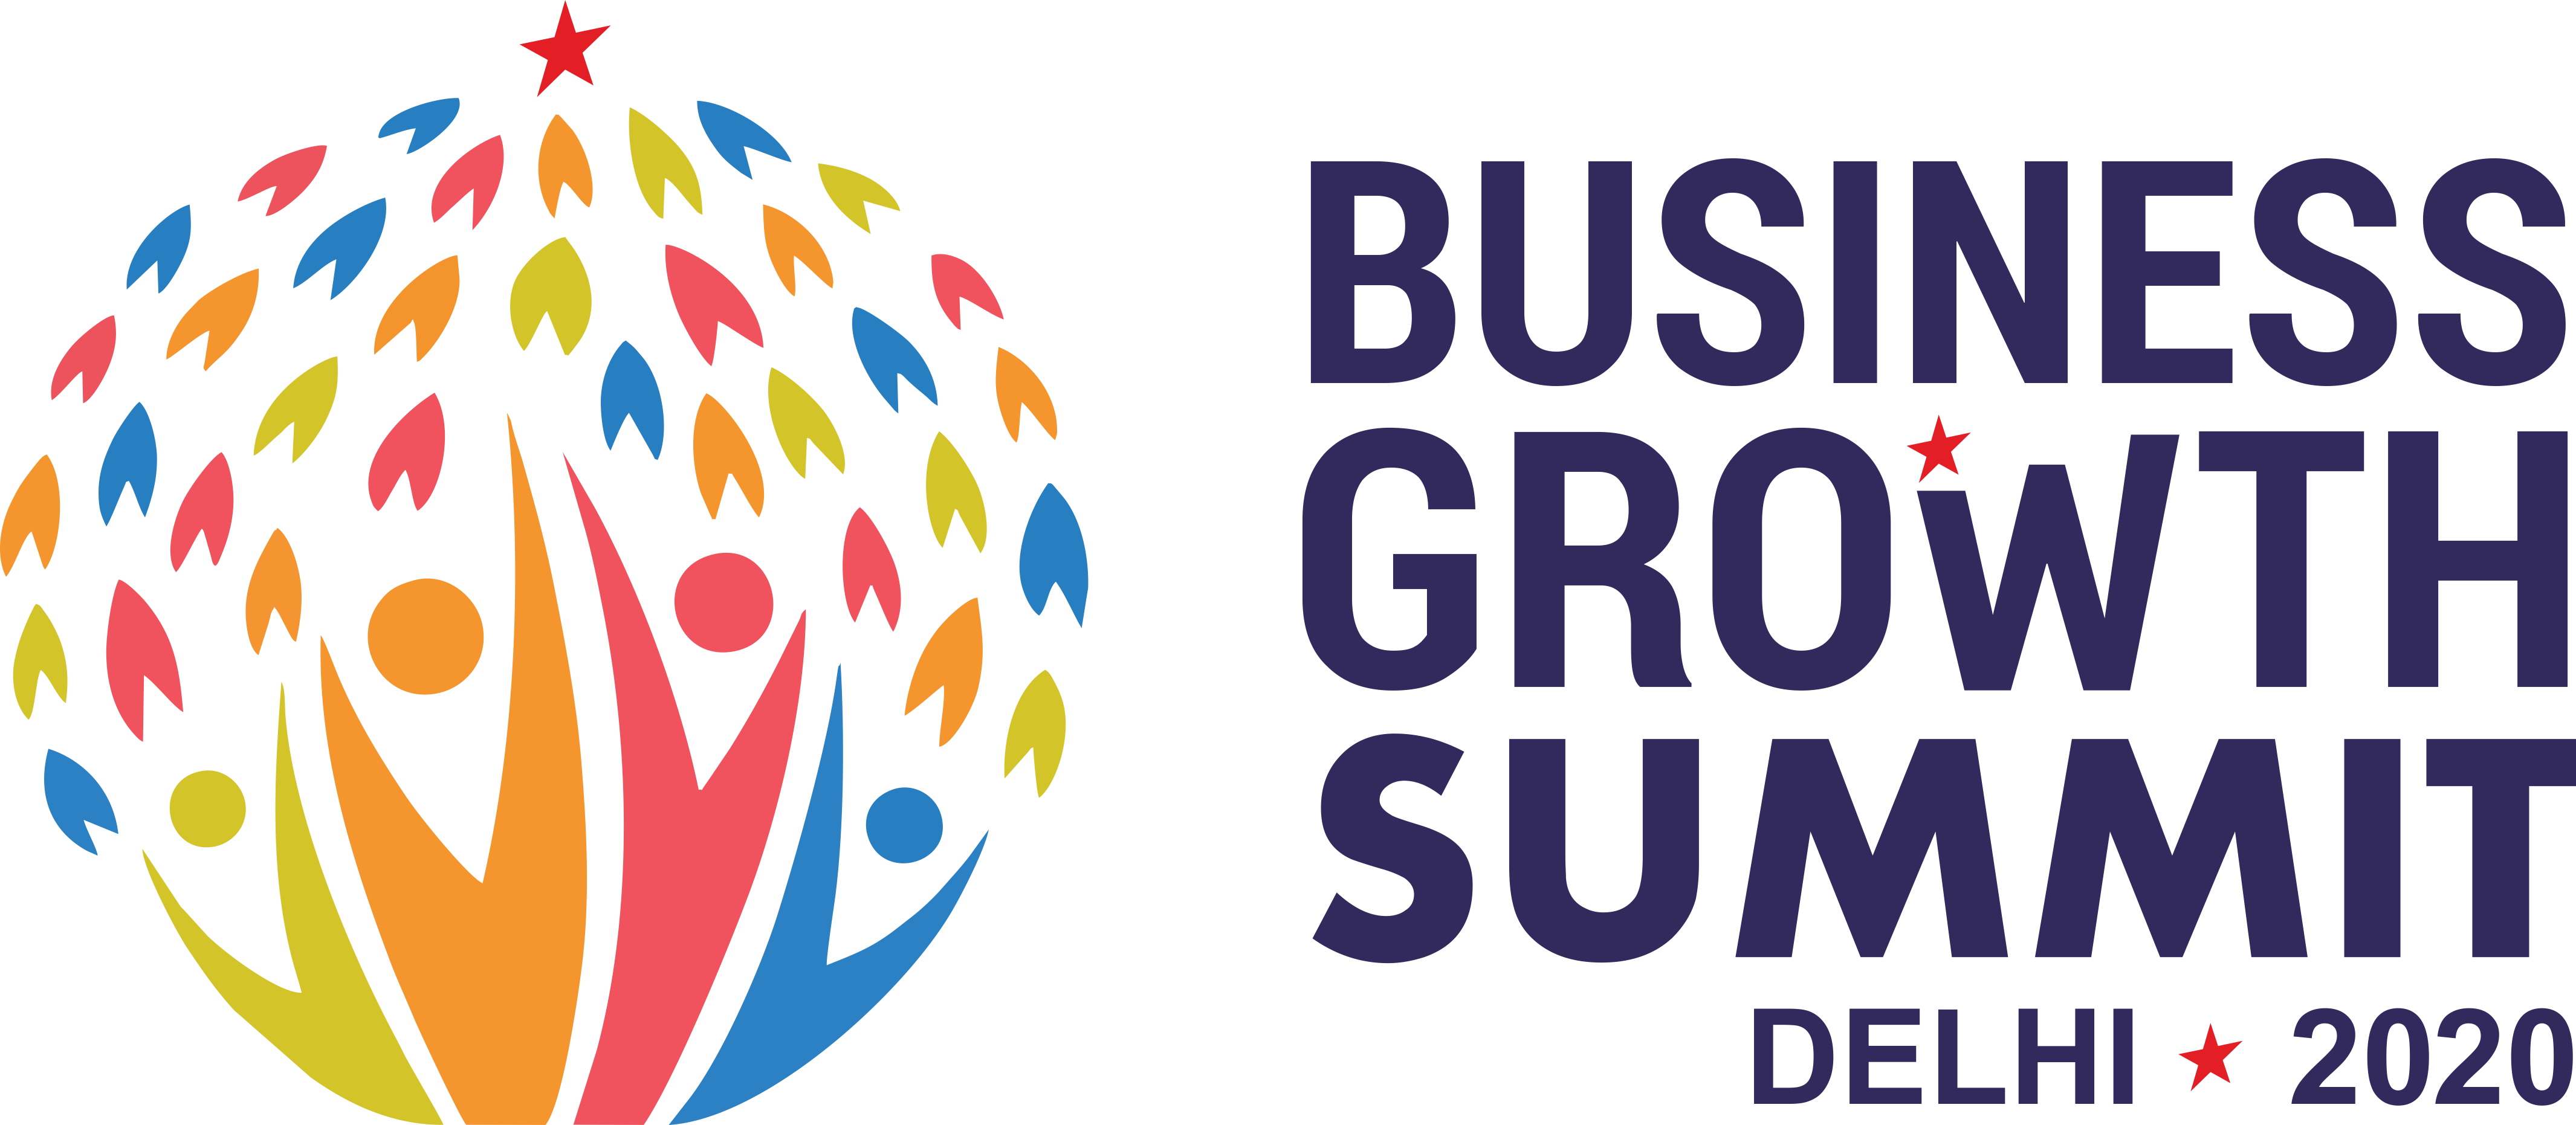 Business Growth Summit​ is a one-day intensive seminar that will impart knowledge, real-life experiences and give you the tools to grow your business.​